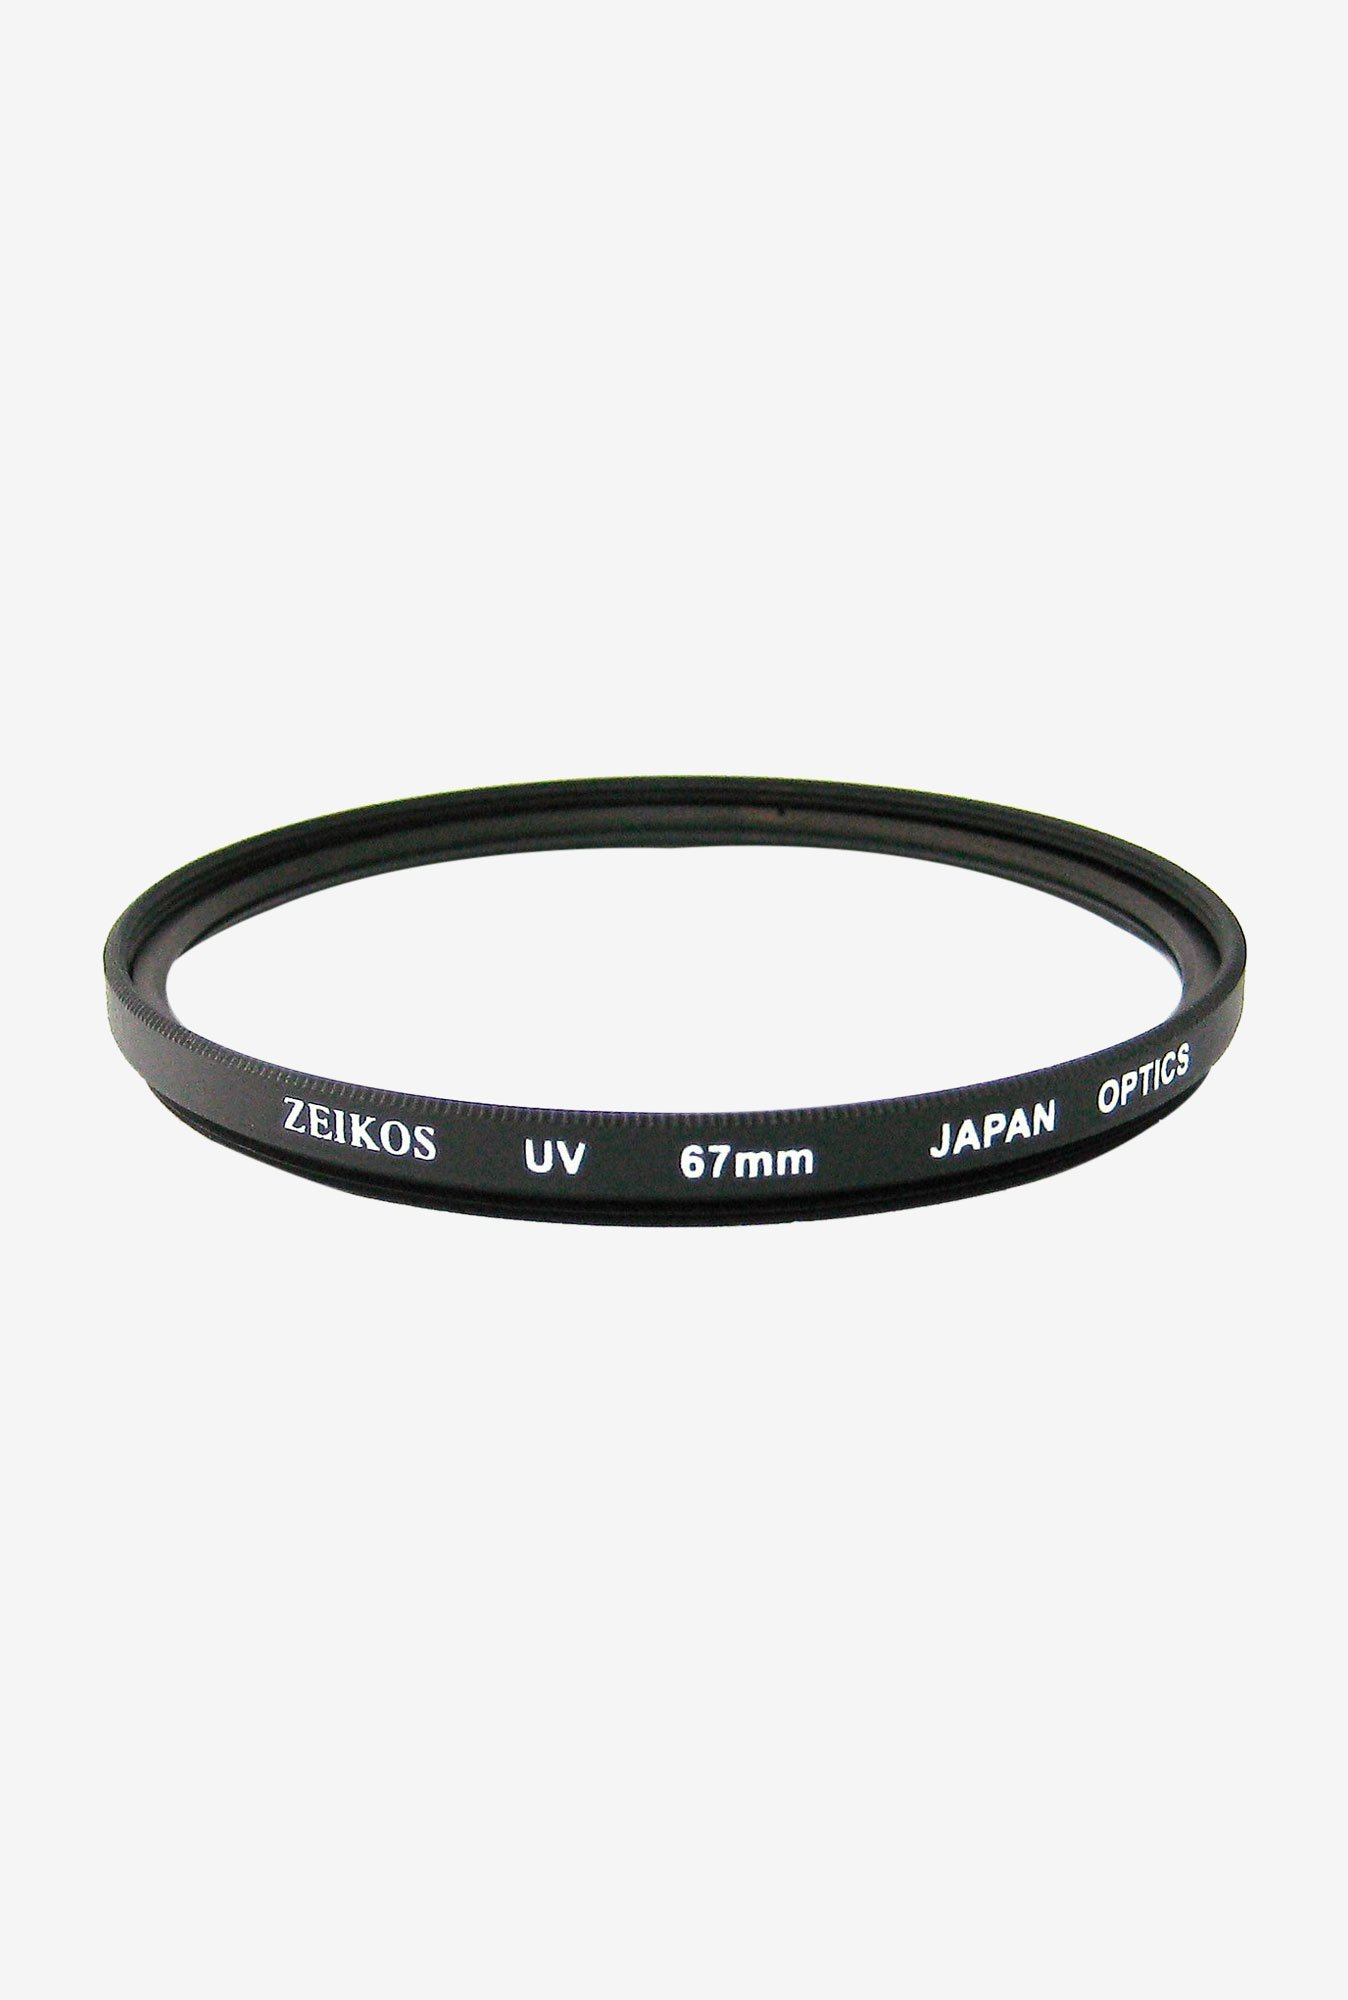 Zeikos ZE-UV67 UV Filter